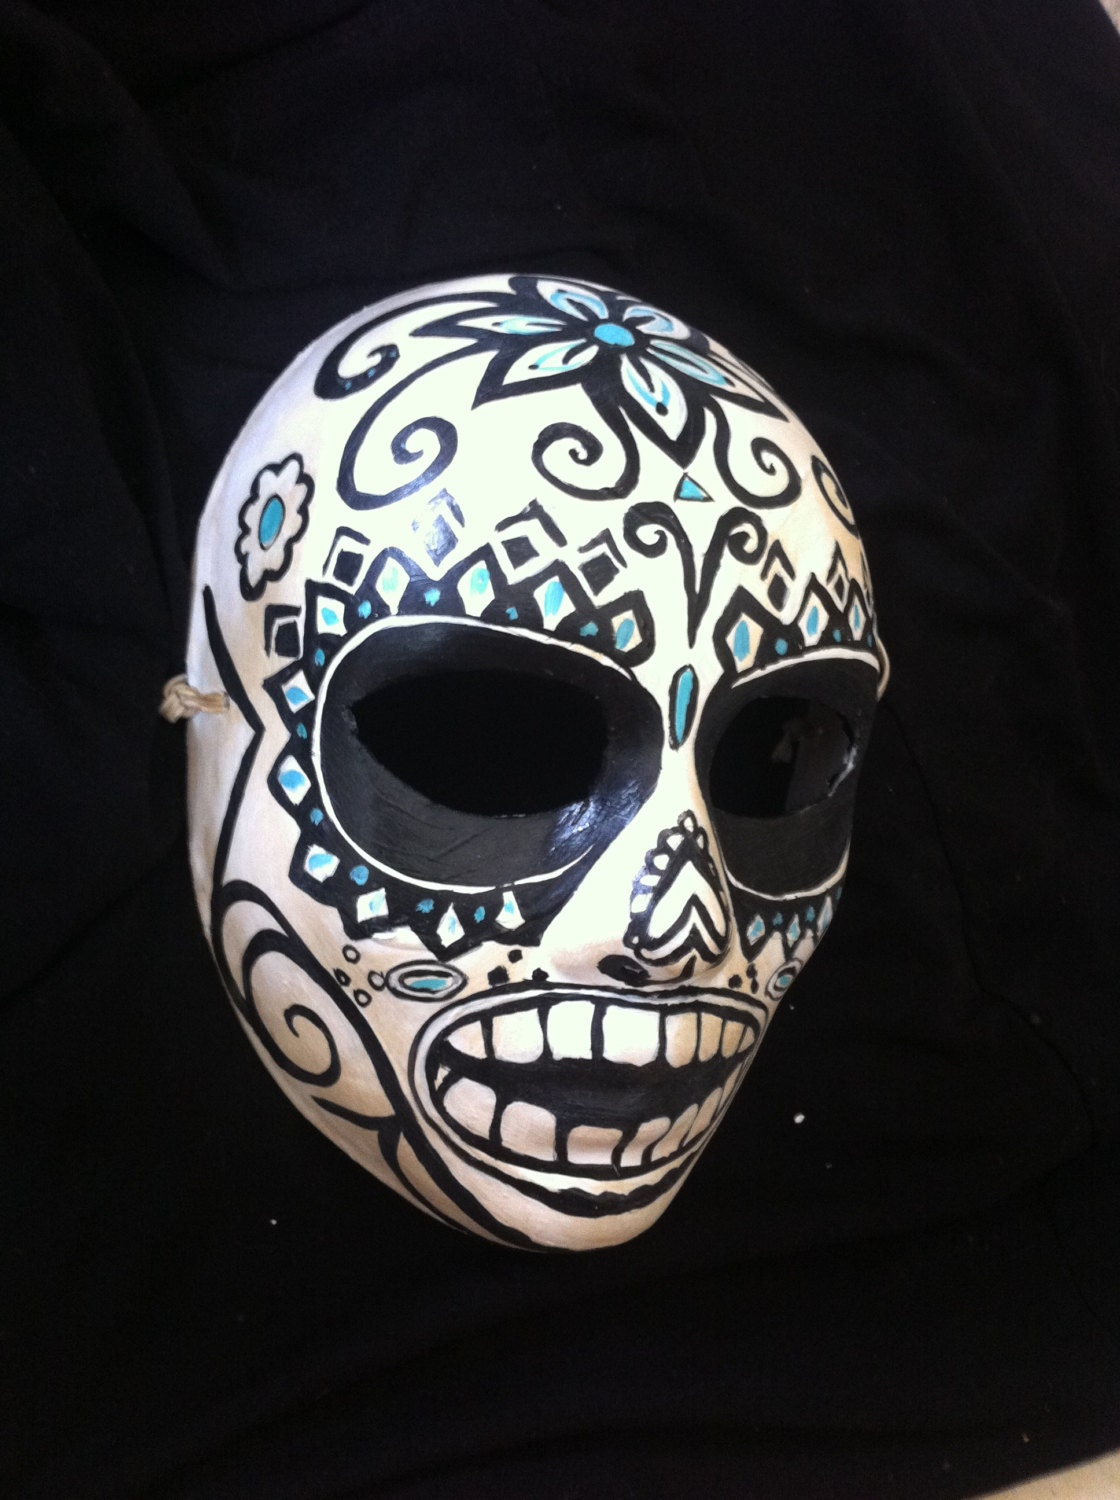 Day of the Dead Savages Fan Sugar Skull Mask